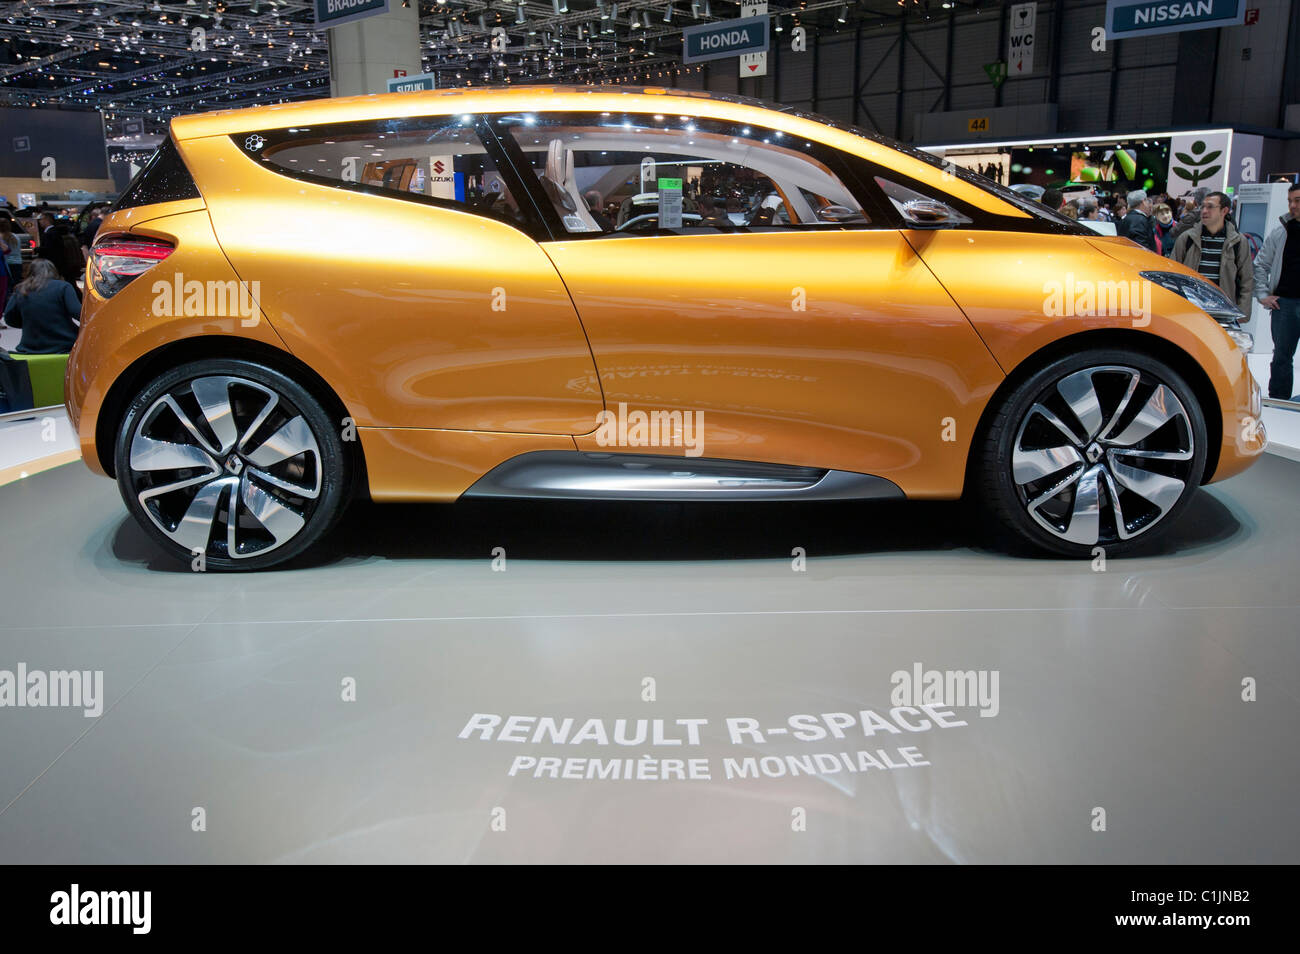 Renault R-Space concept au Salon de Genève 2011 Suisse Photo Stock